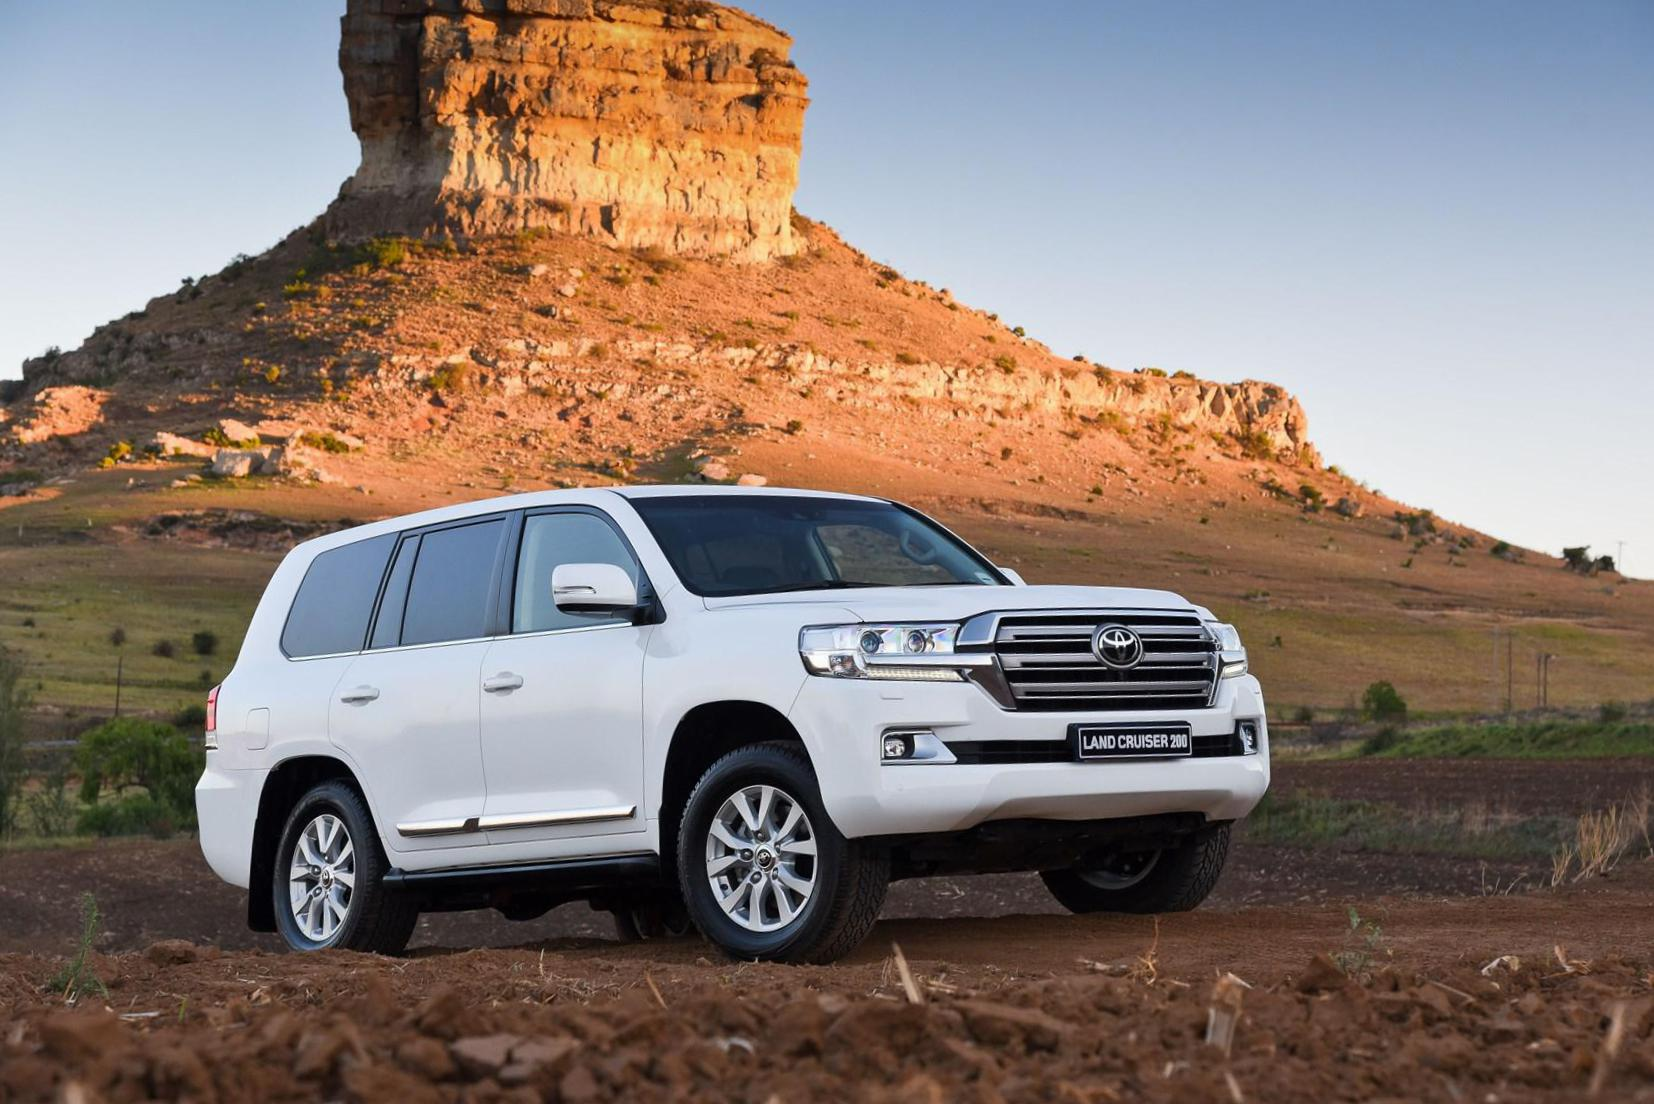 Toyota Land Cruiser 200 approved suv